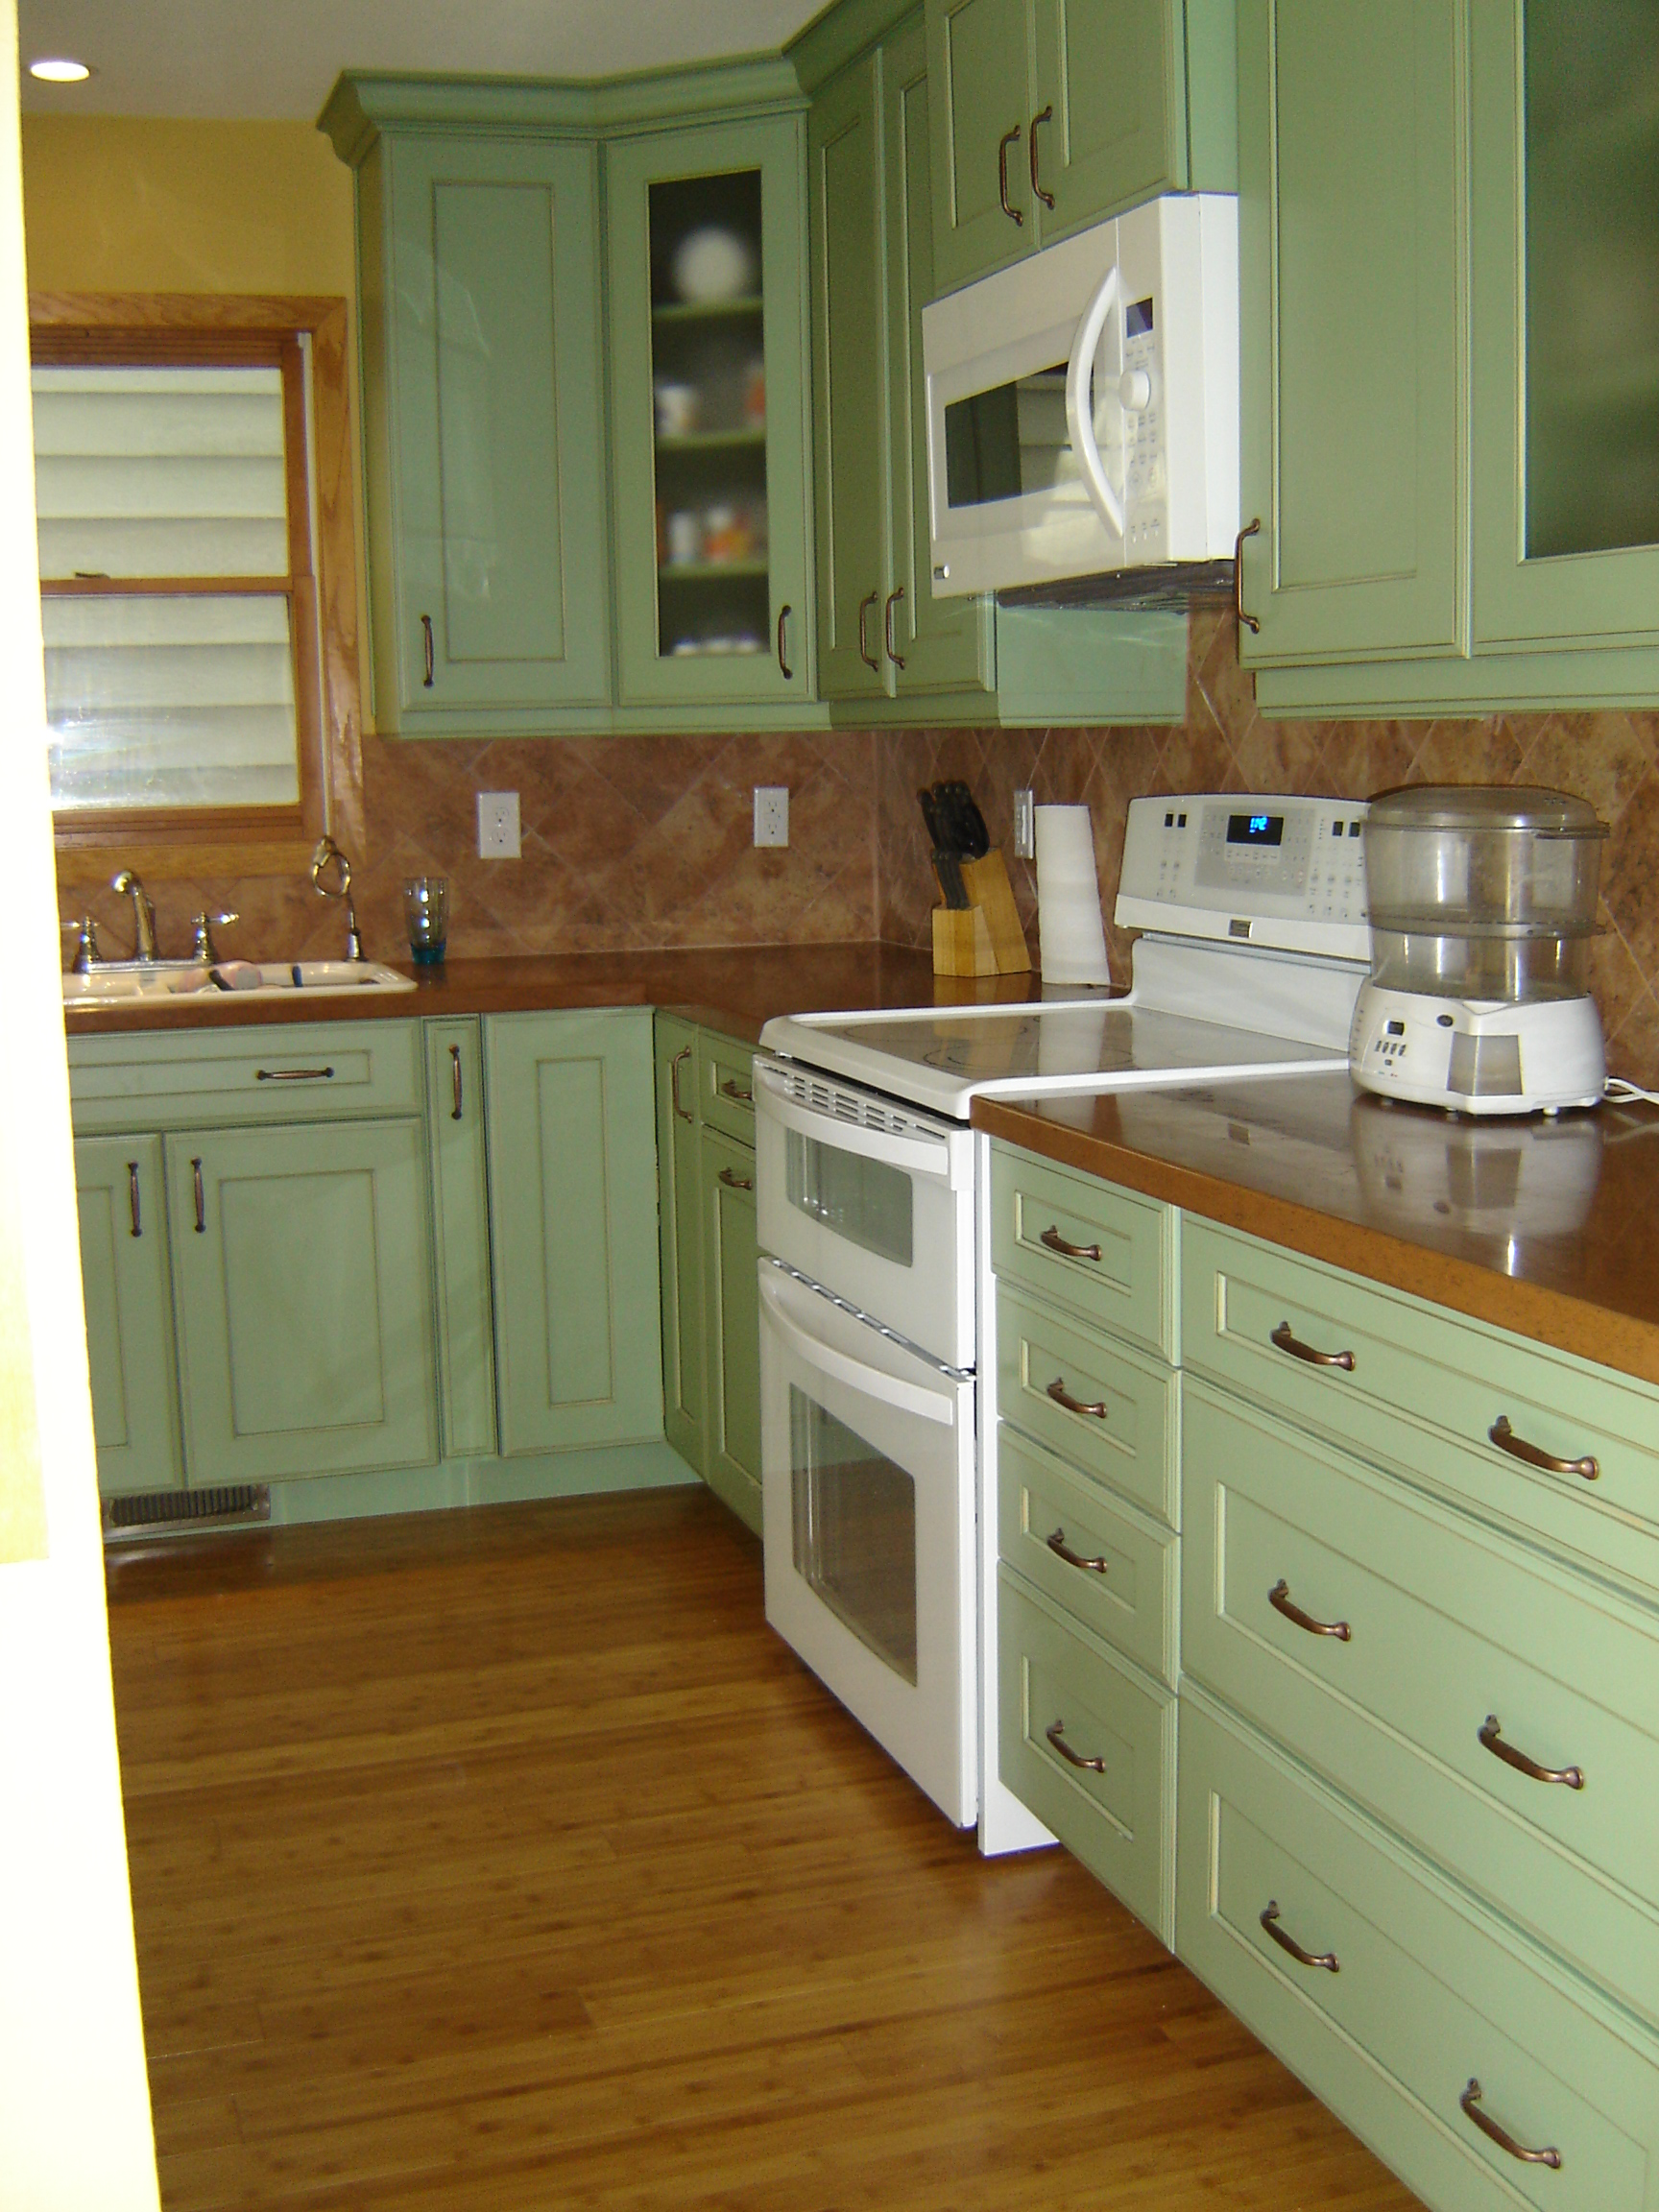 ▻ phenomenal design about kitchen remodeling lincoln ne educated